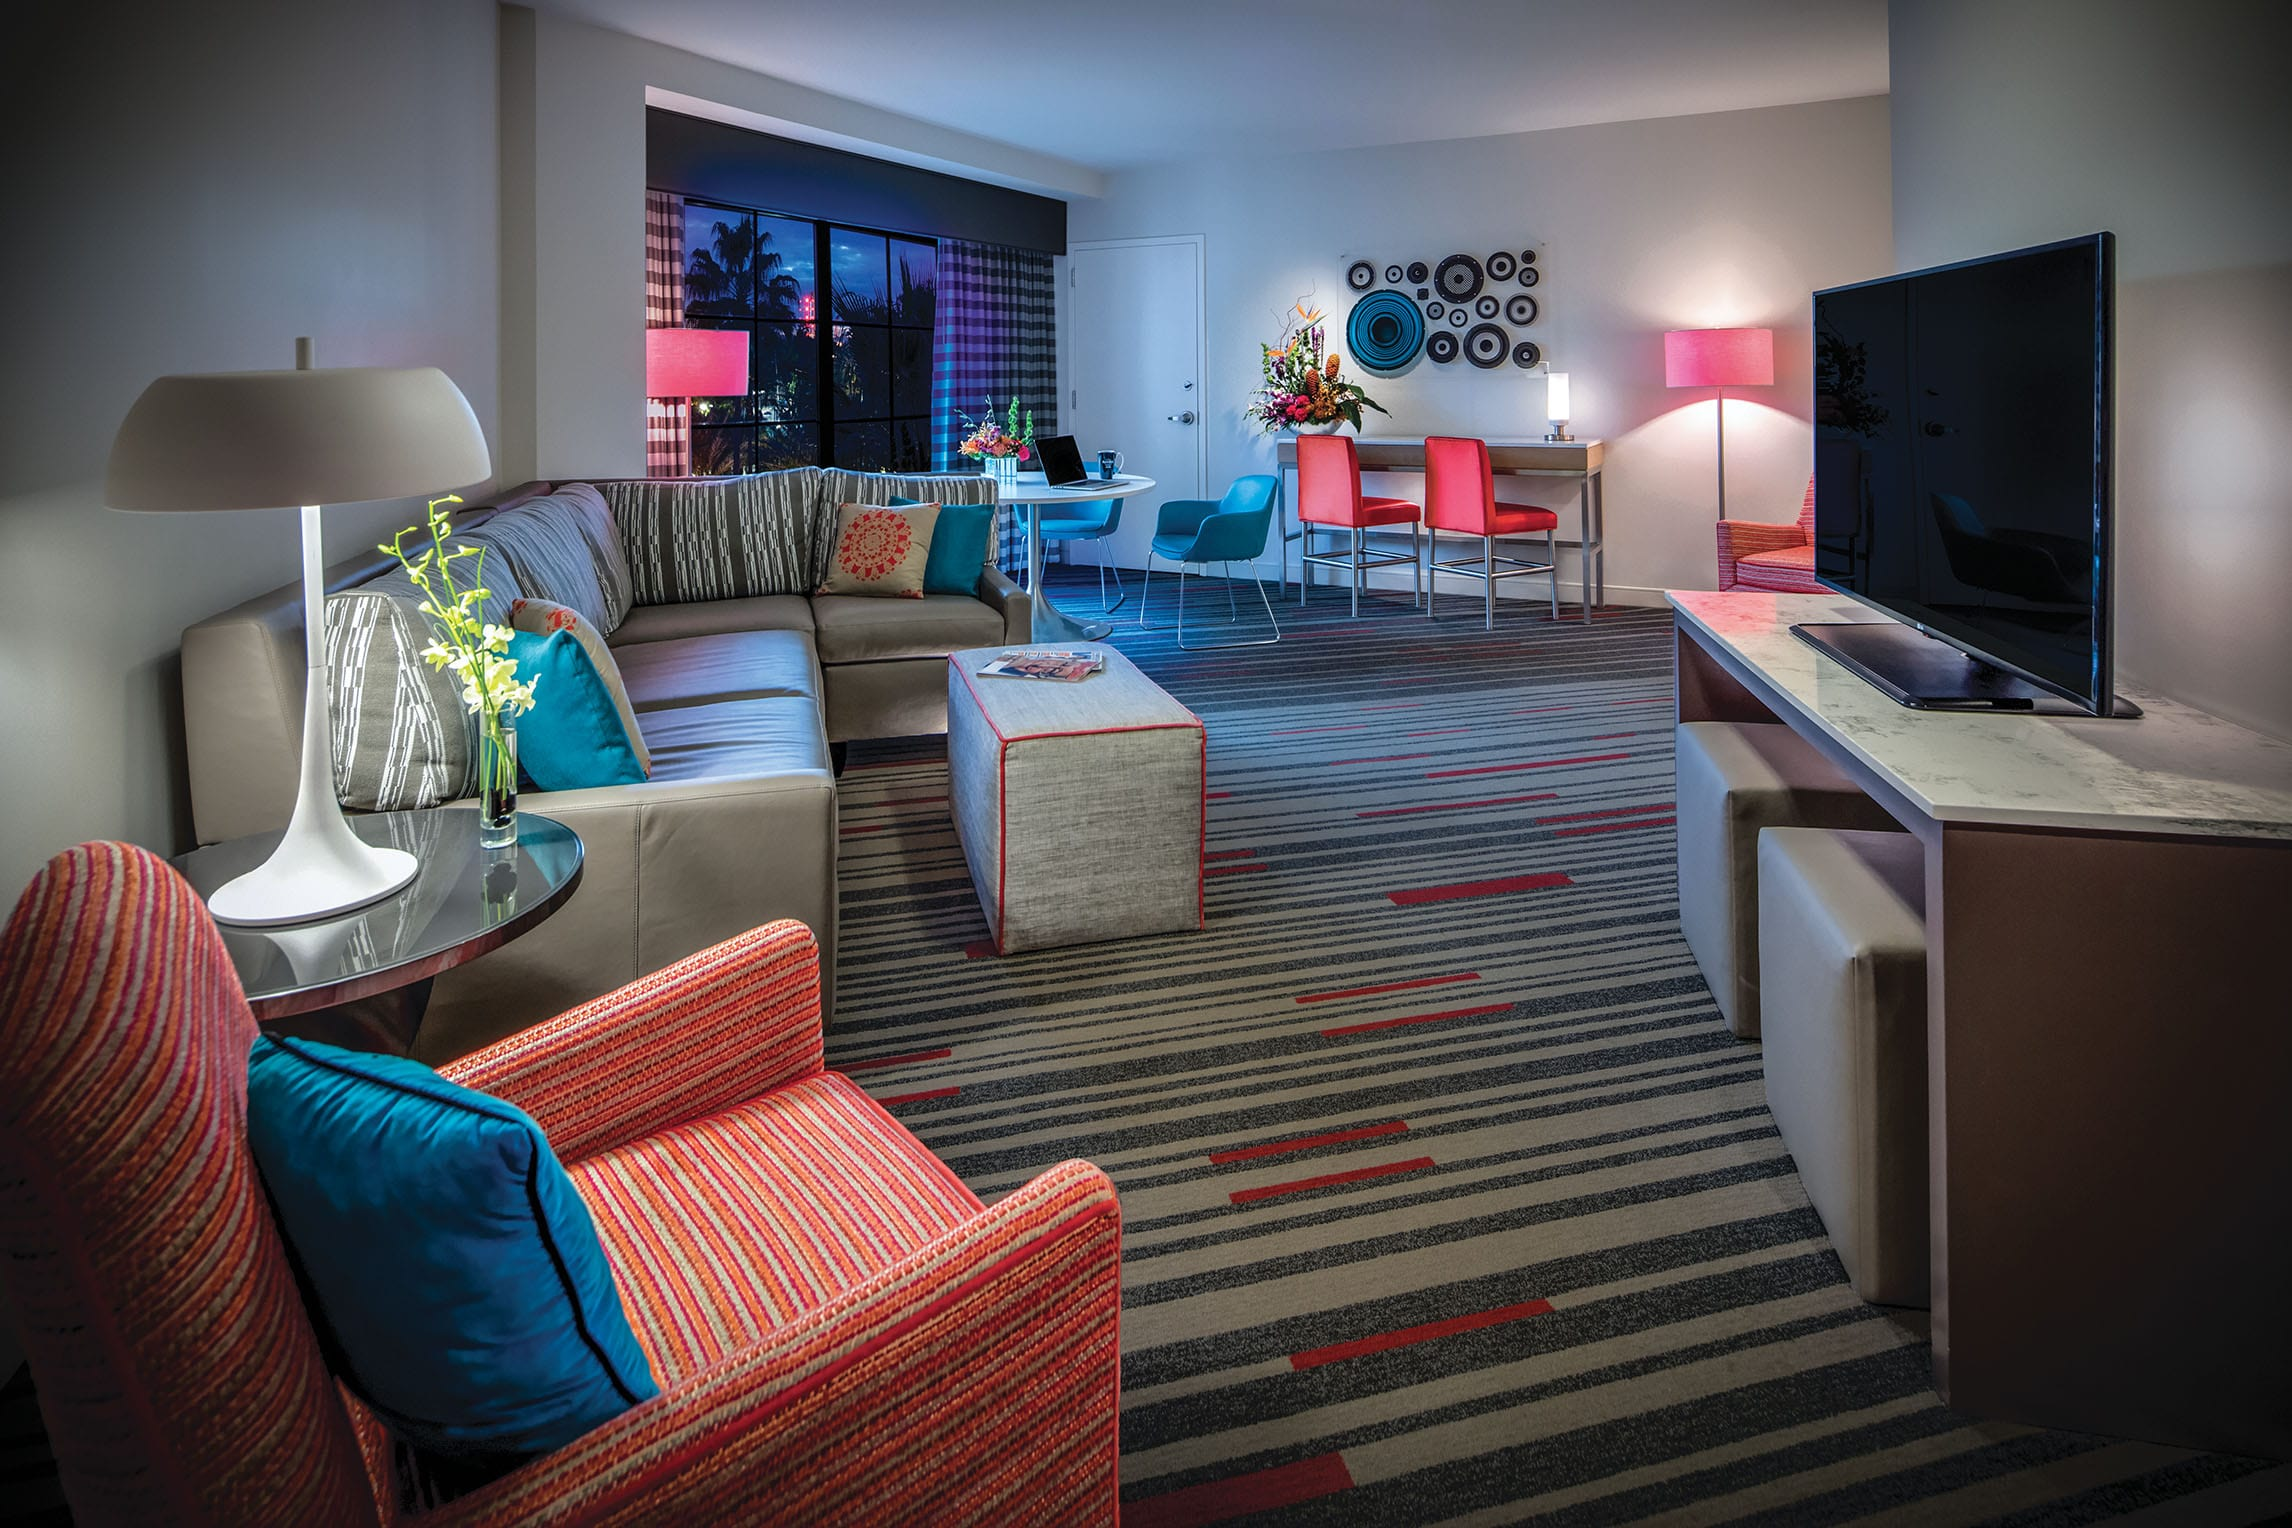 3 Bedroom King Suites. Deluxe 2 Bedroom Suites at Hard Rock Hotel  at Universal Orlando